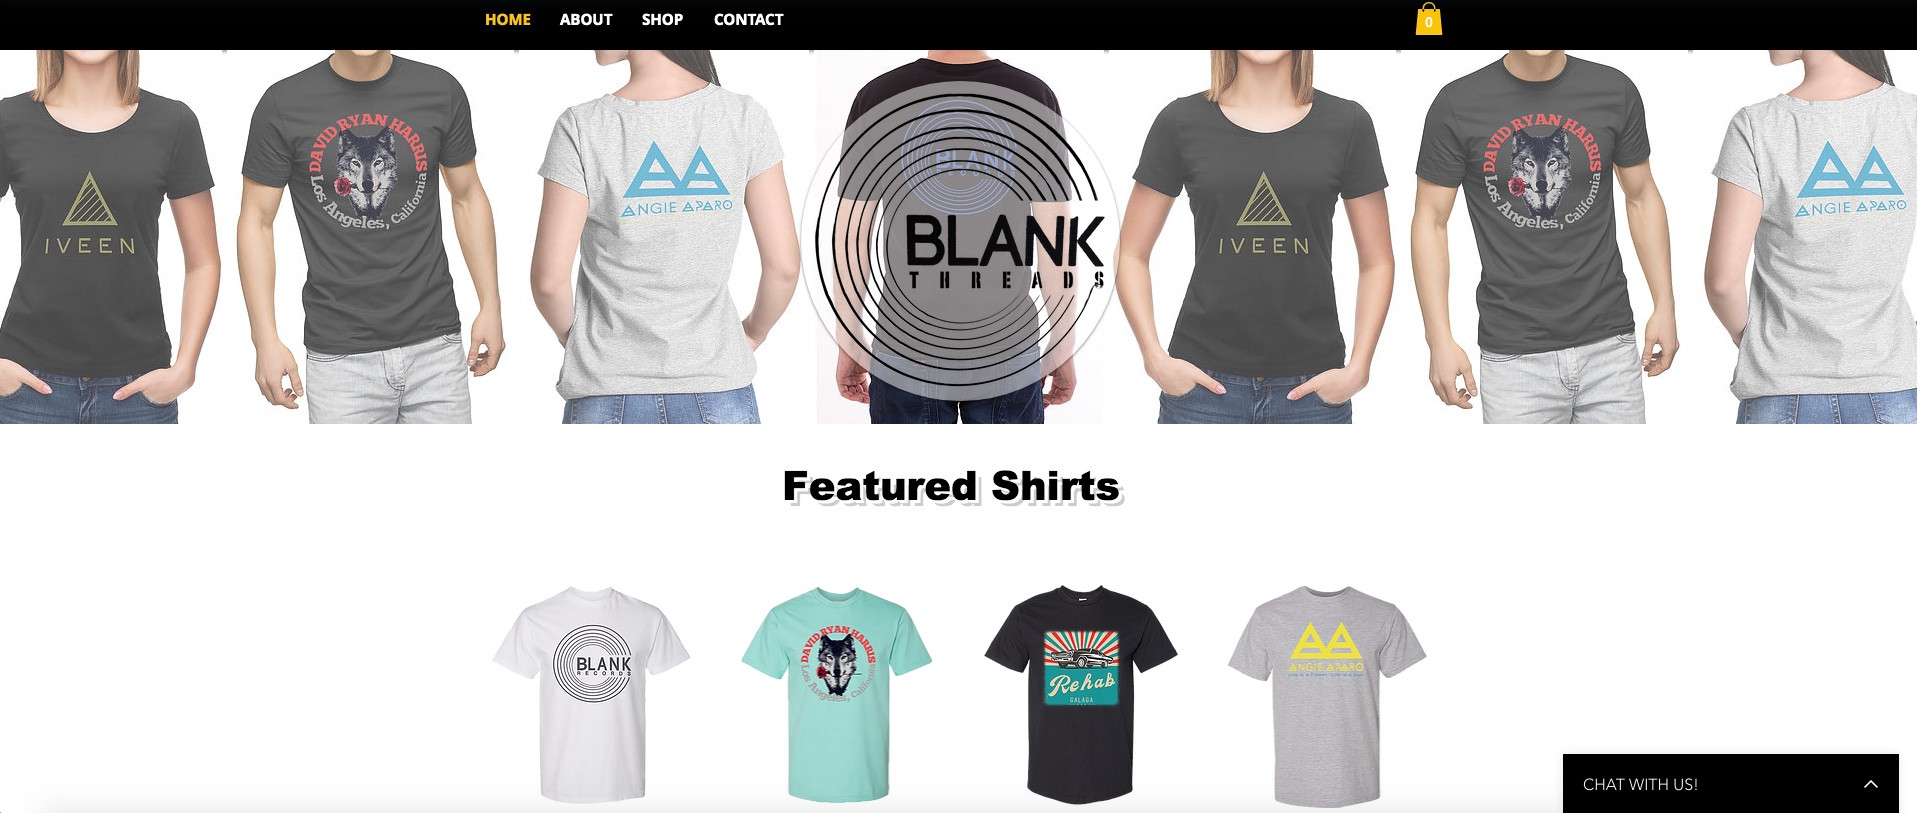 Shop Blank Threads